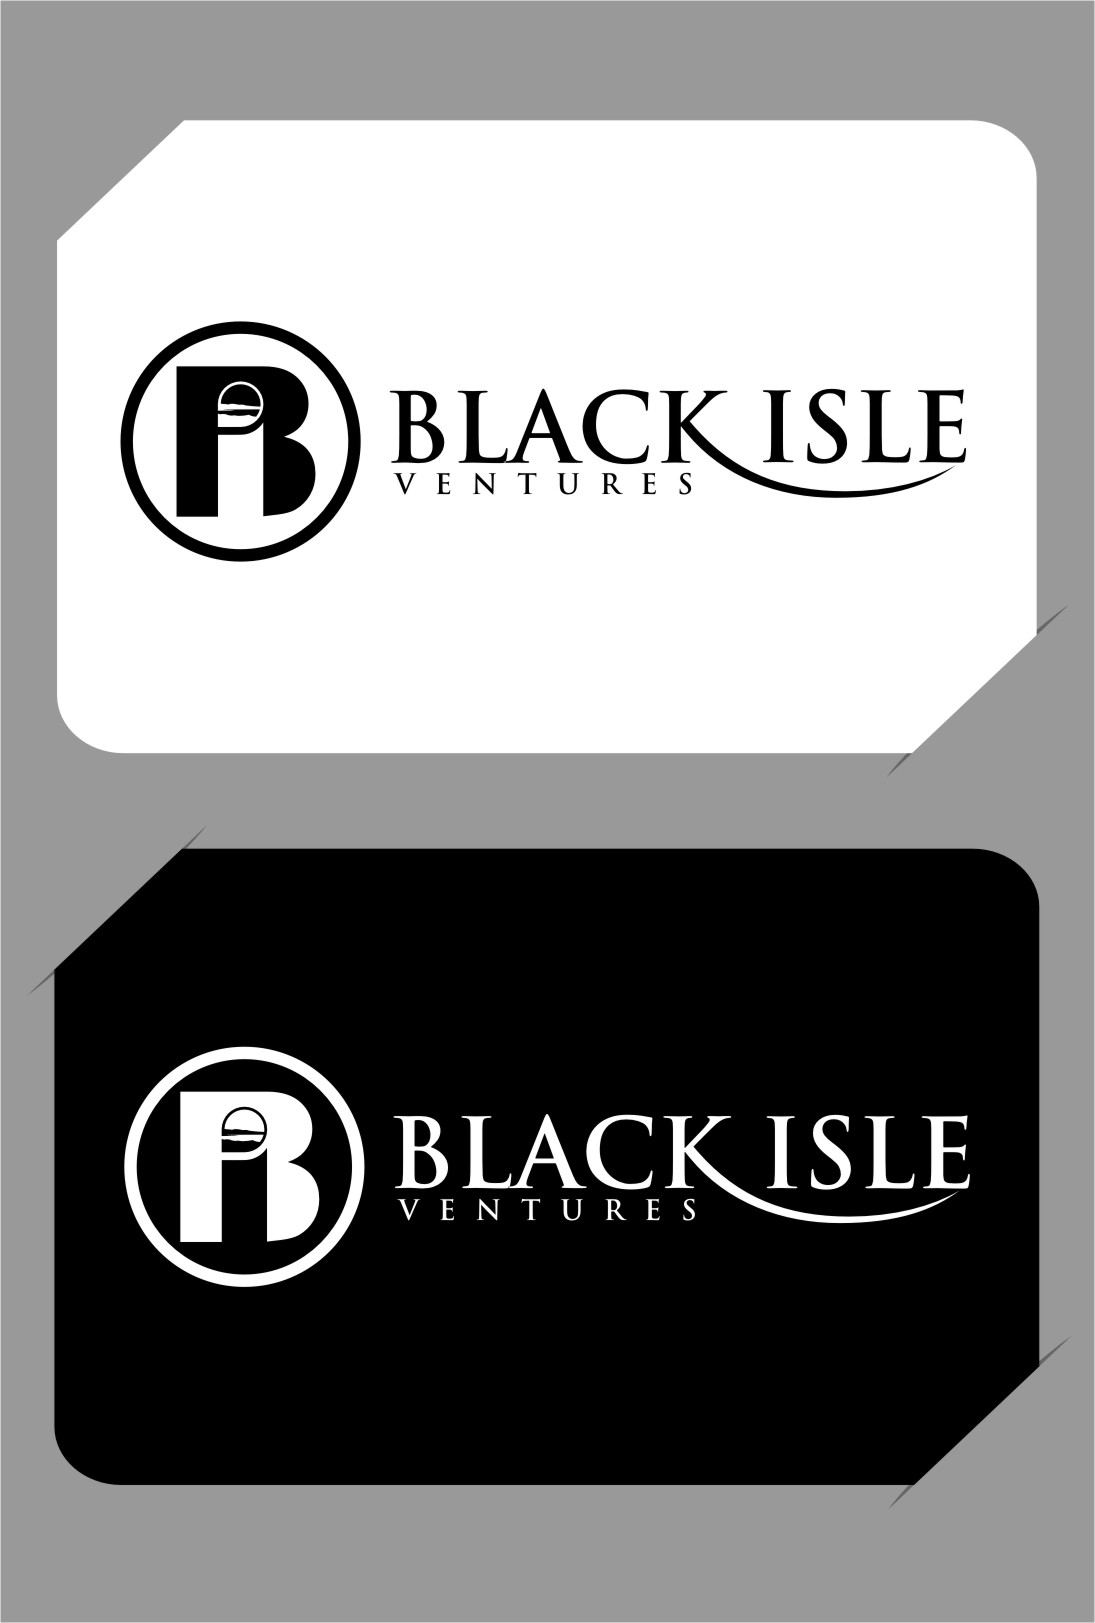 Logo Design by Ngepet_art - Entry No. 111 in the Logo Design Contest Creative Logo Design for Black Isle Ventures.